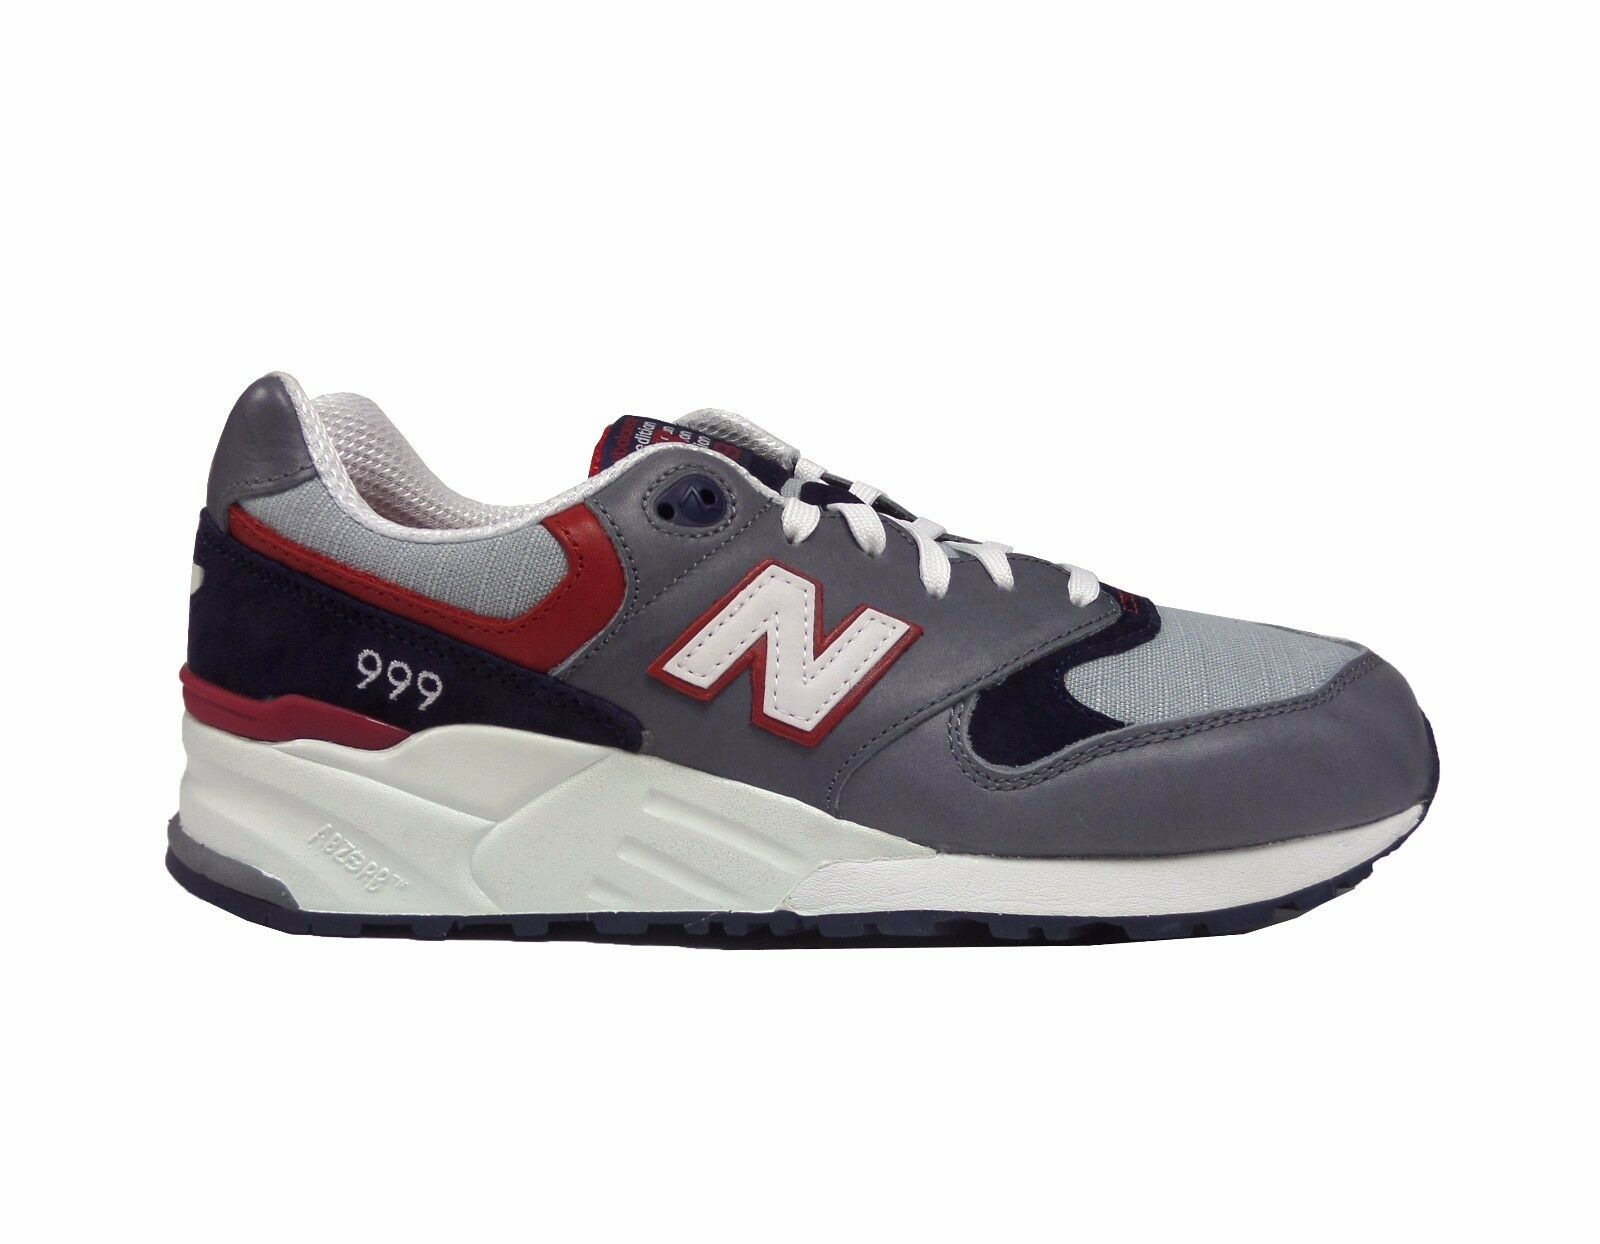 New Balance Men's 999 ELITE EDITION LOST WORLDS Shoes Grey/Navy/Red ML999LW a